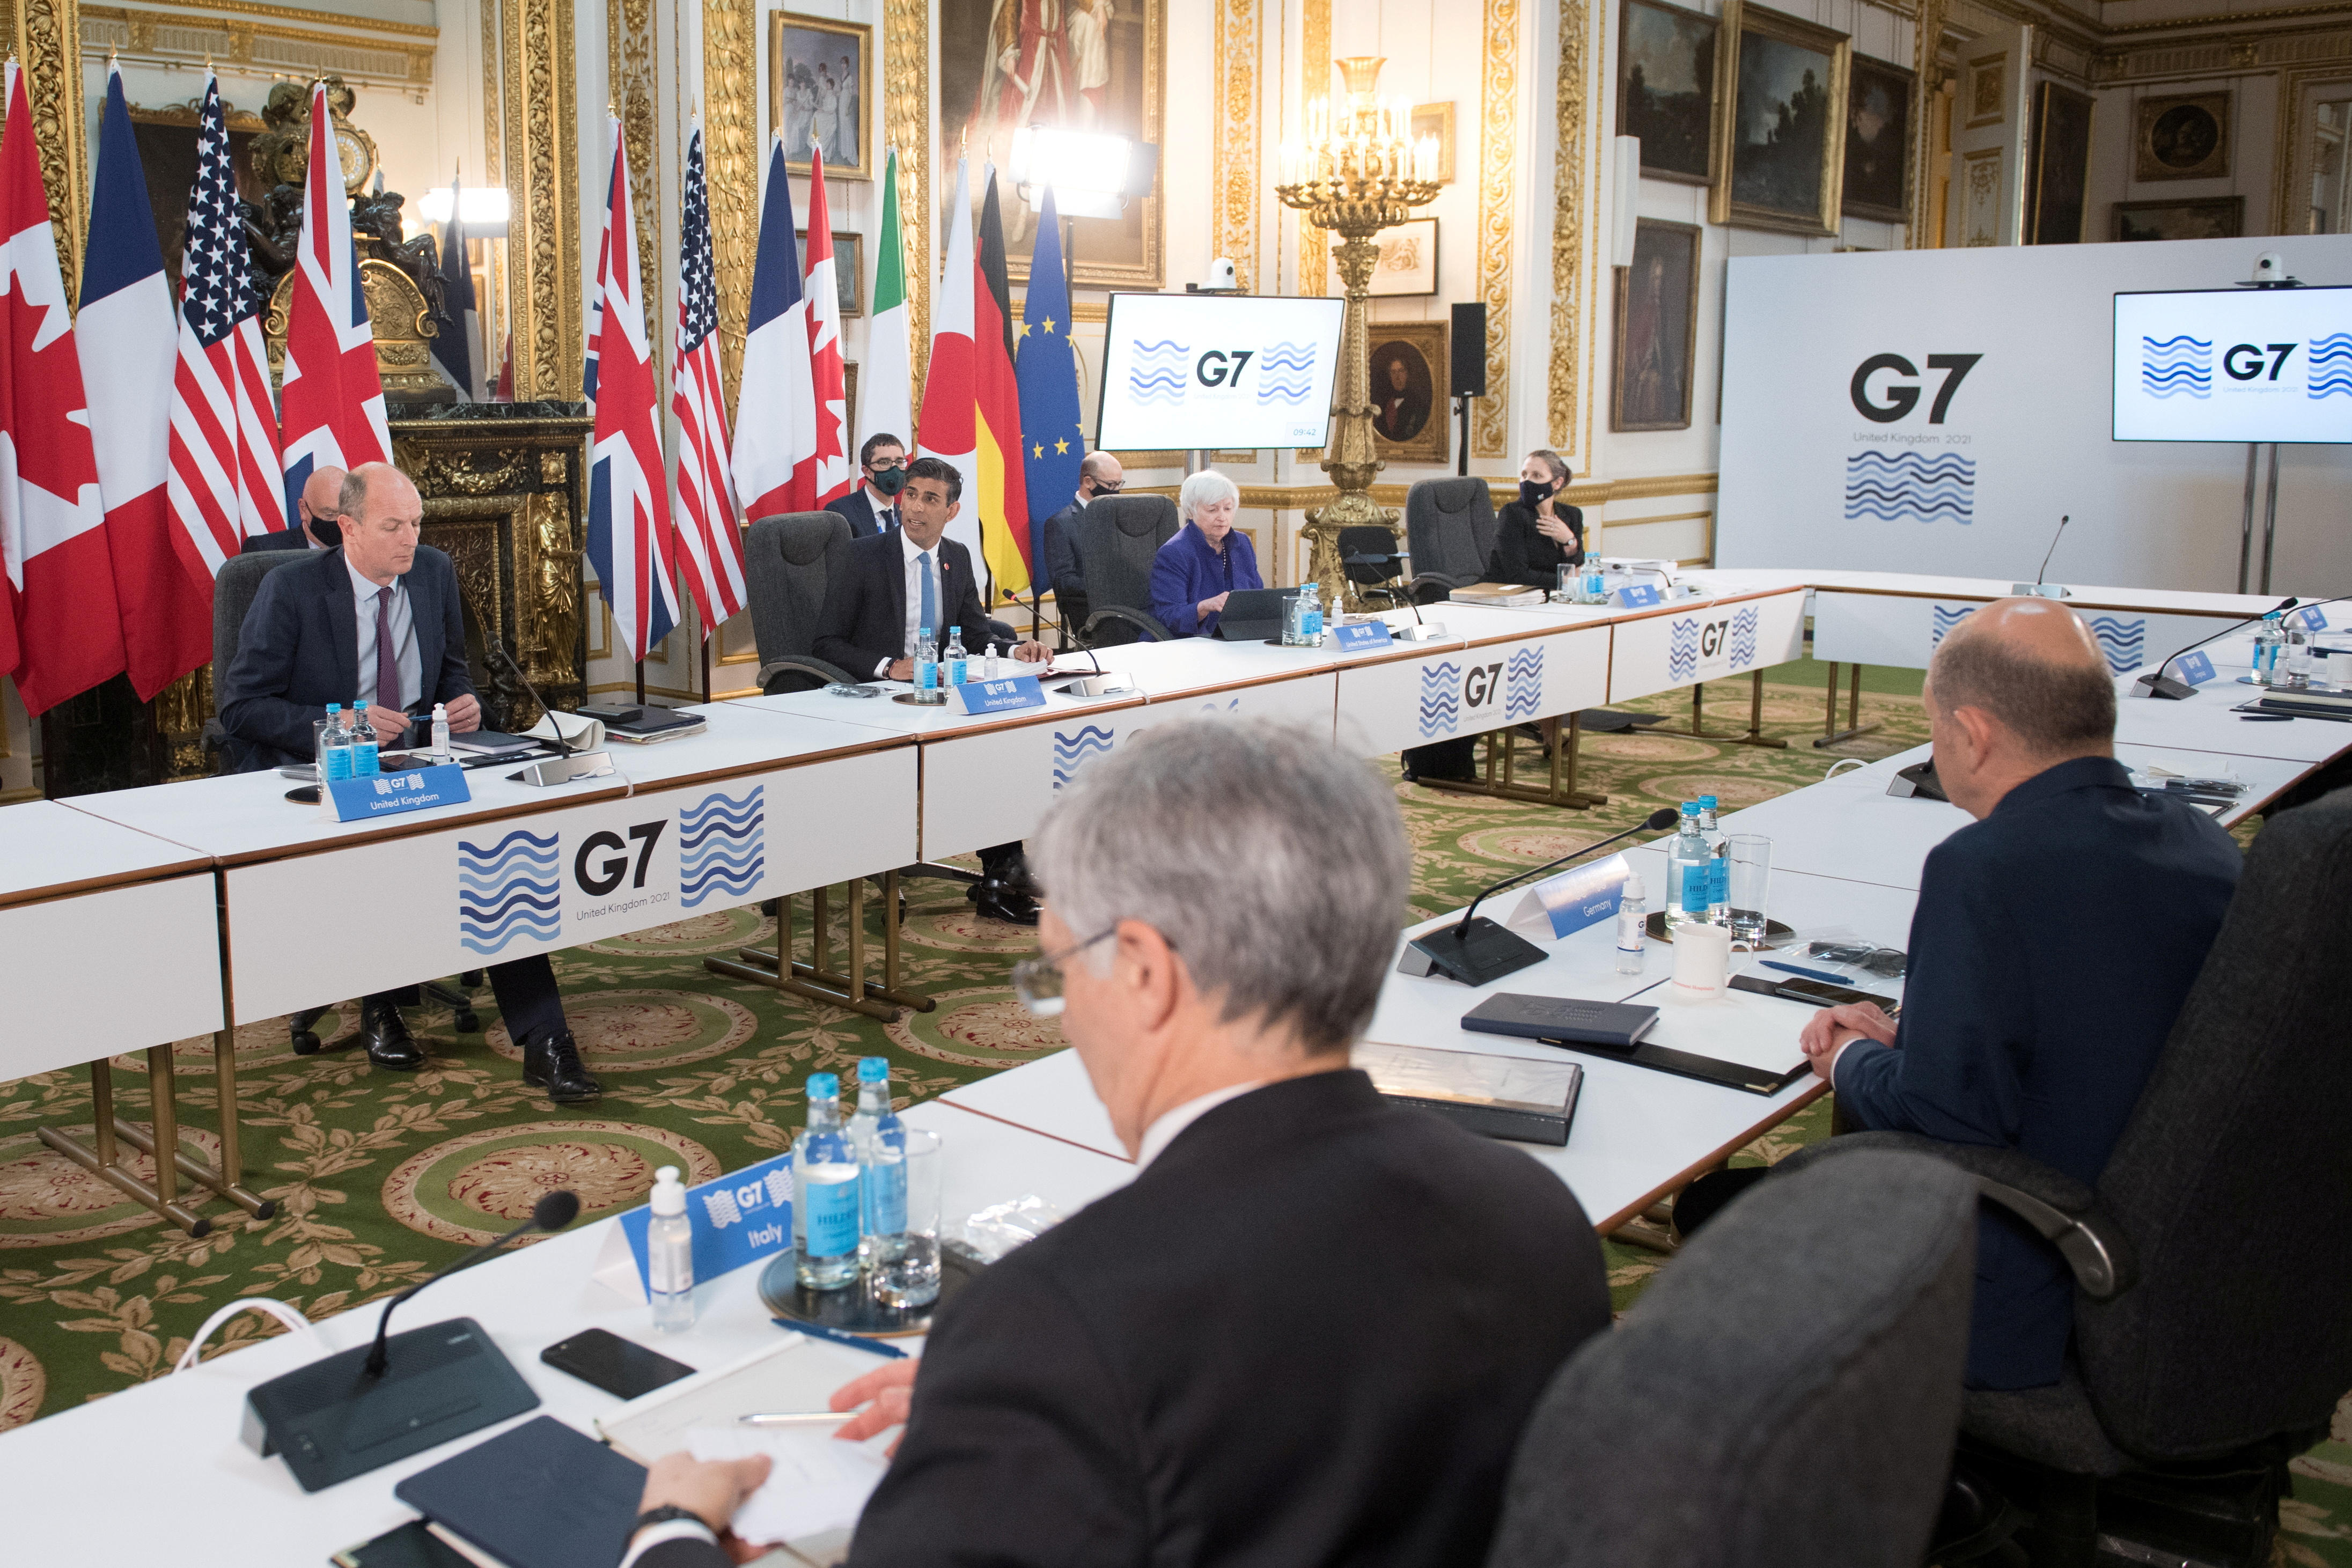 Britain's Chancellor of the Exchequer Rishi Sunak speaks at a meeting of finance ministers from across the G7 nations ahead of the G7 leaders' summit, at Lancaster House in London, Britain June 4, 2021. Stefan Rousseau